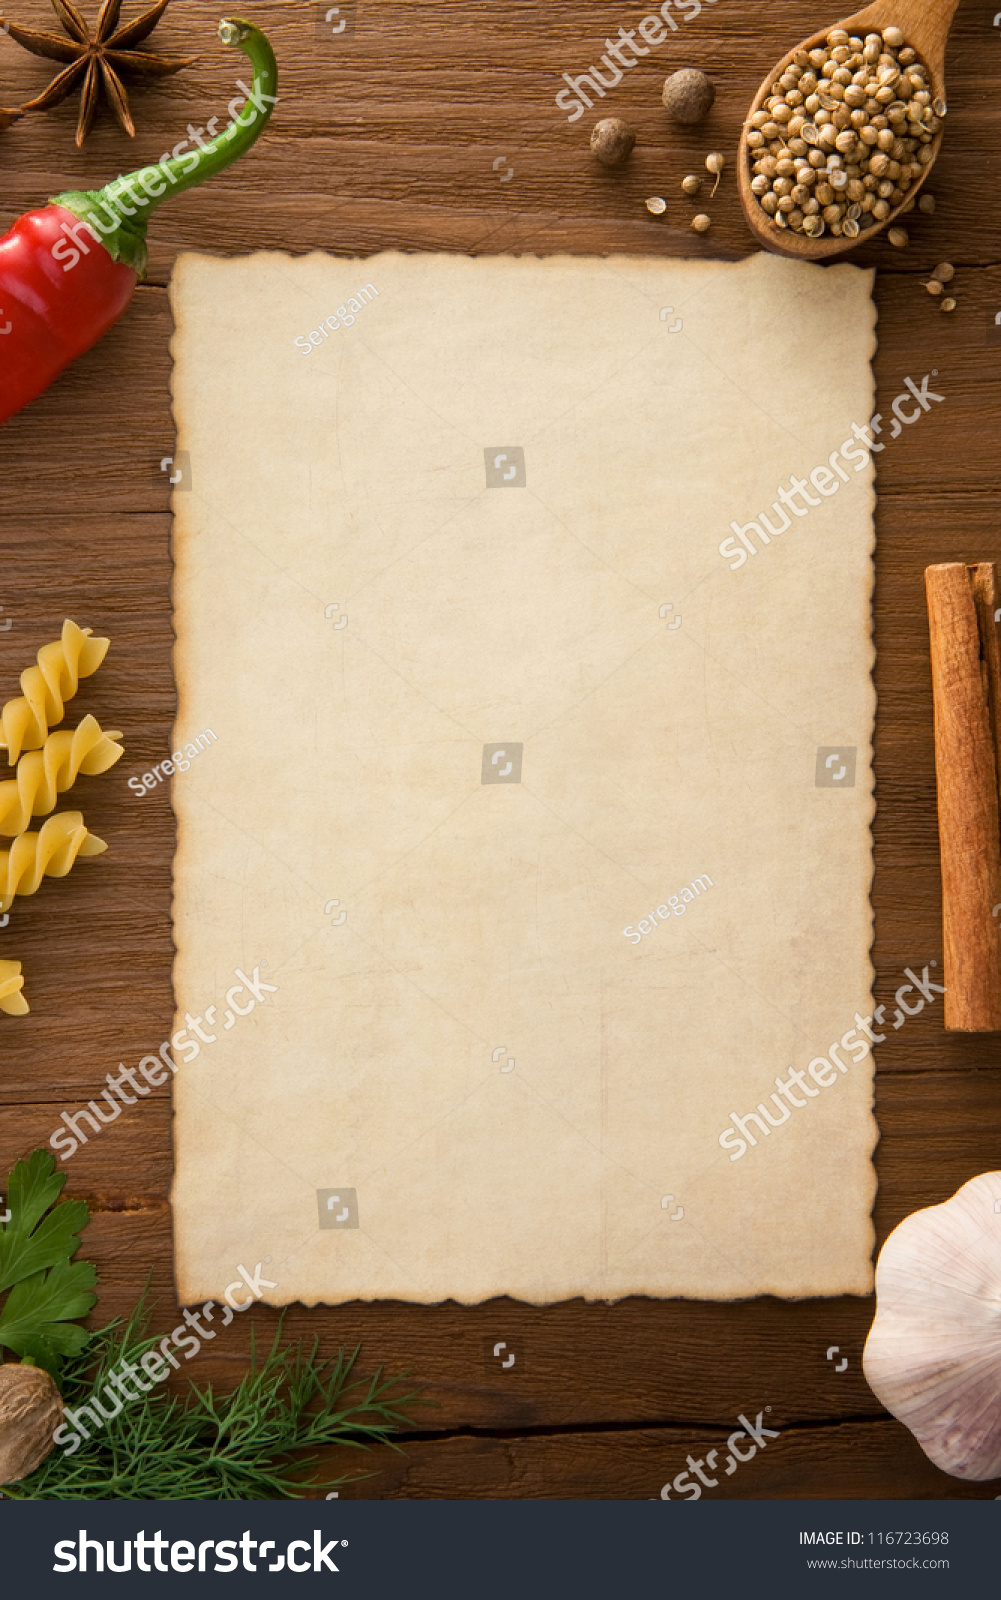 Background Cooking Recipes Spices On Wooden Stock Photo ...